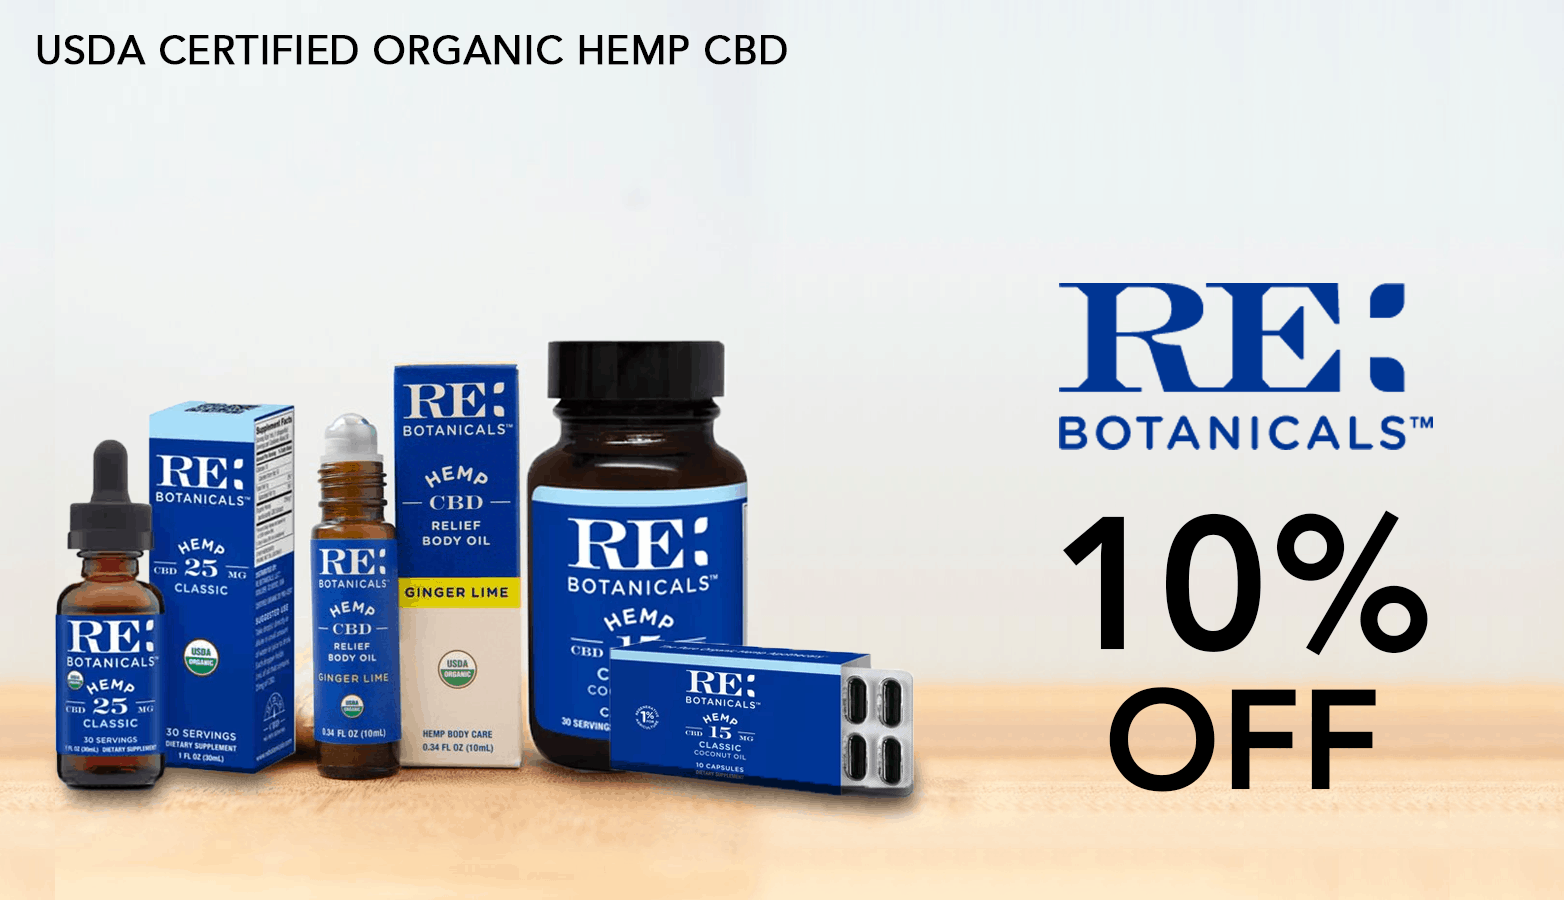 RE Botanicals CBD Coupon Code discounts promos save on cannabis online Website